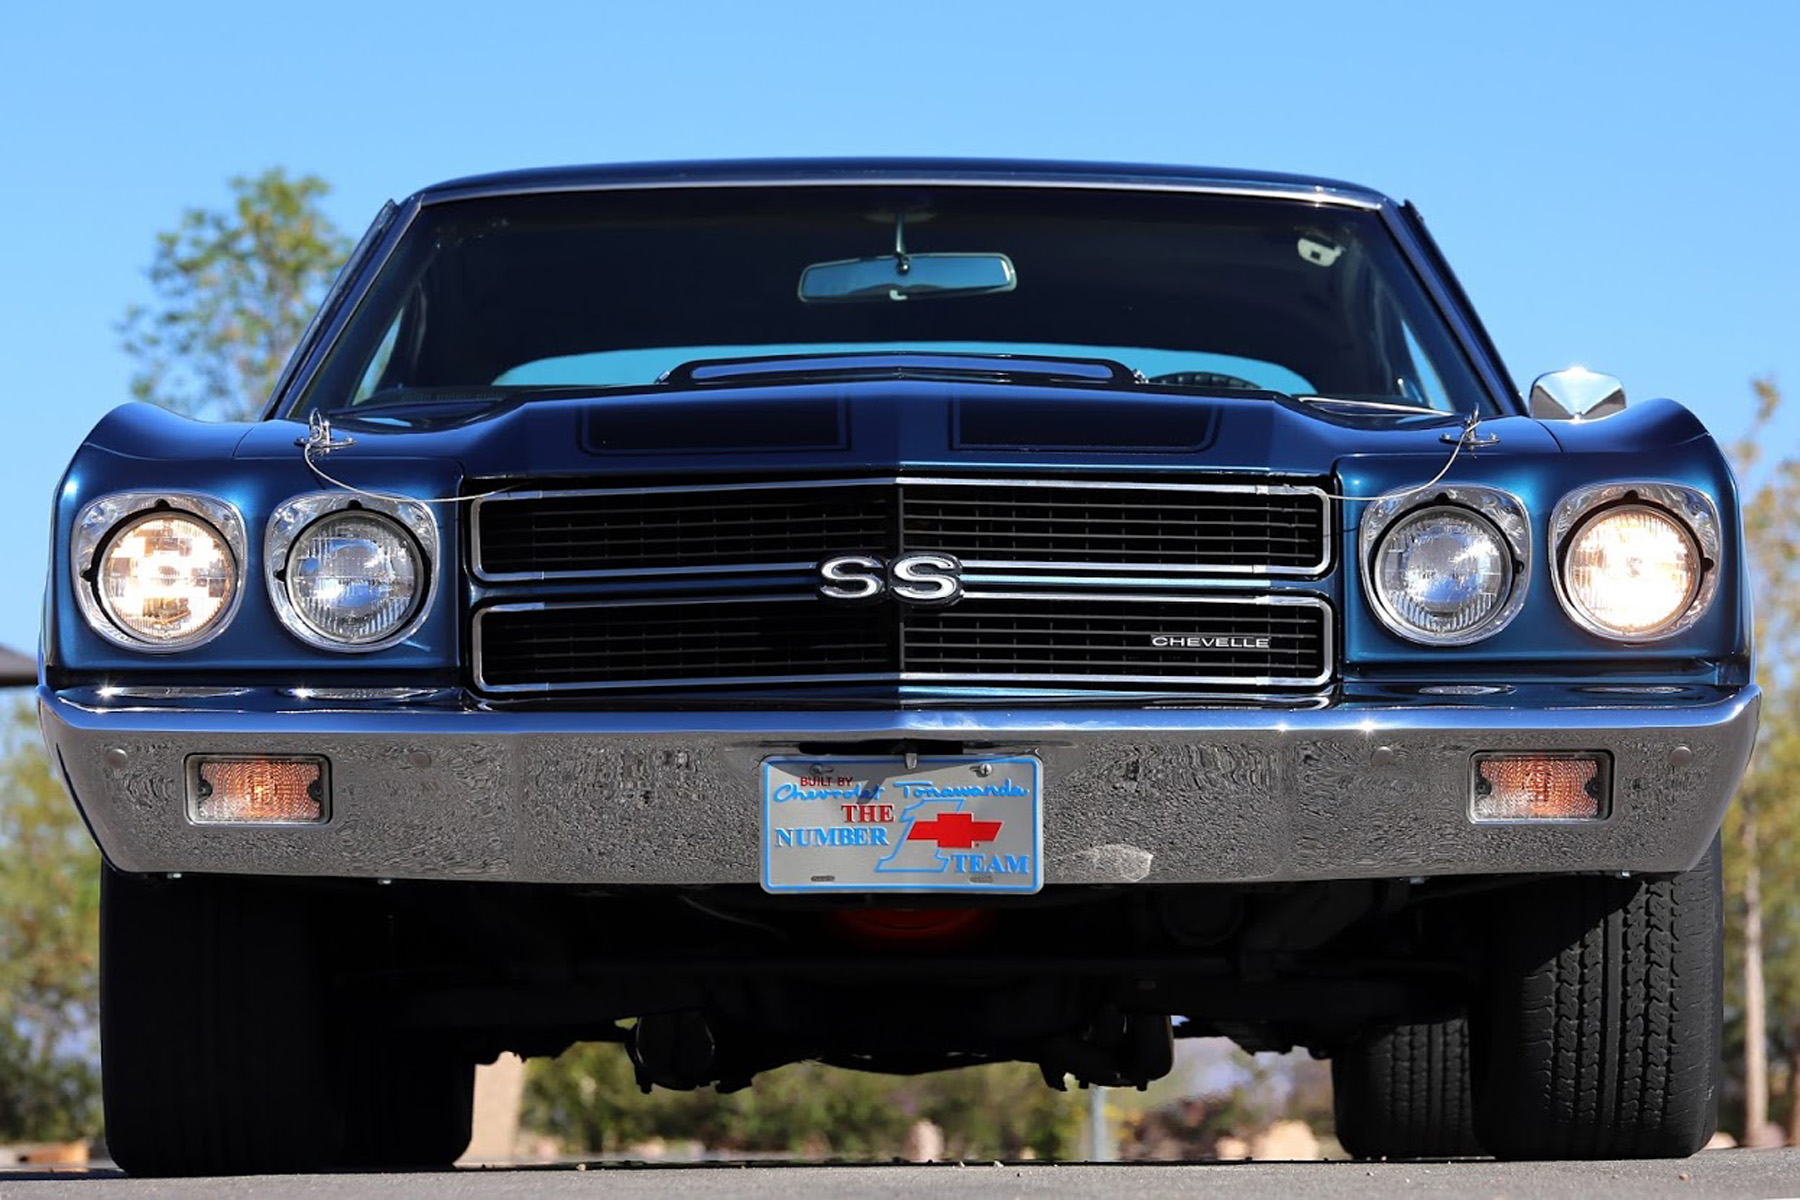 hight resolution of hypothetical question if you were to visit your local weekend car show what s the most common mid size muscle car you would most likely see in attendance